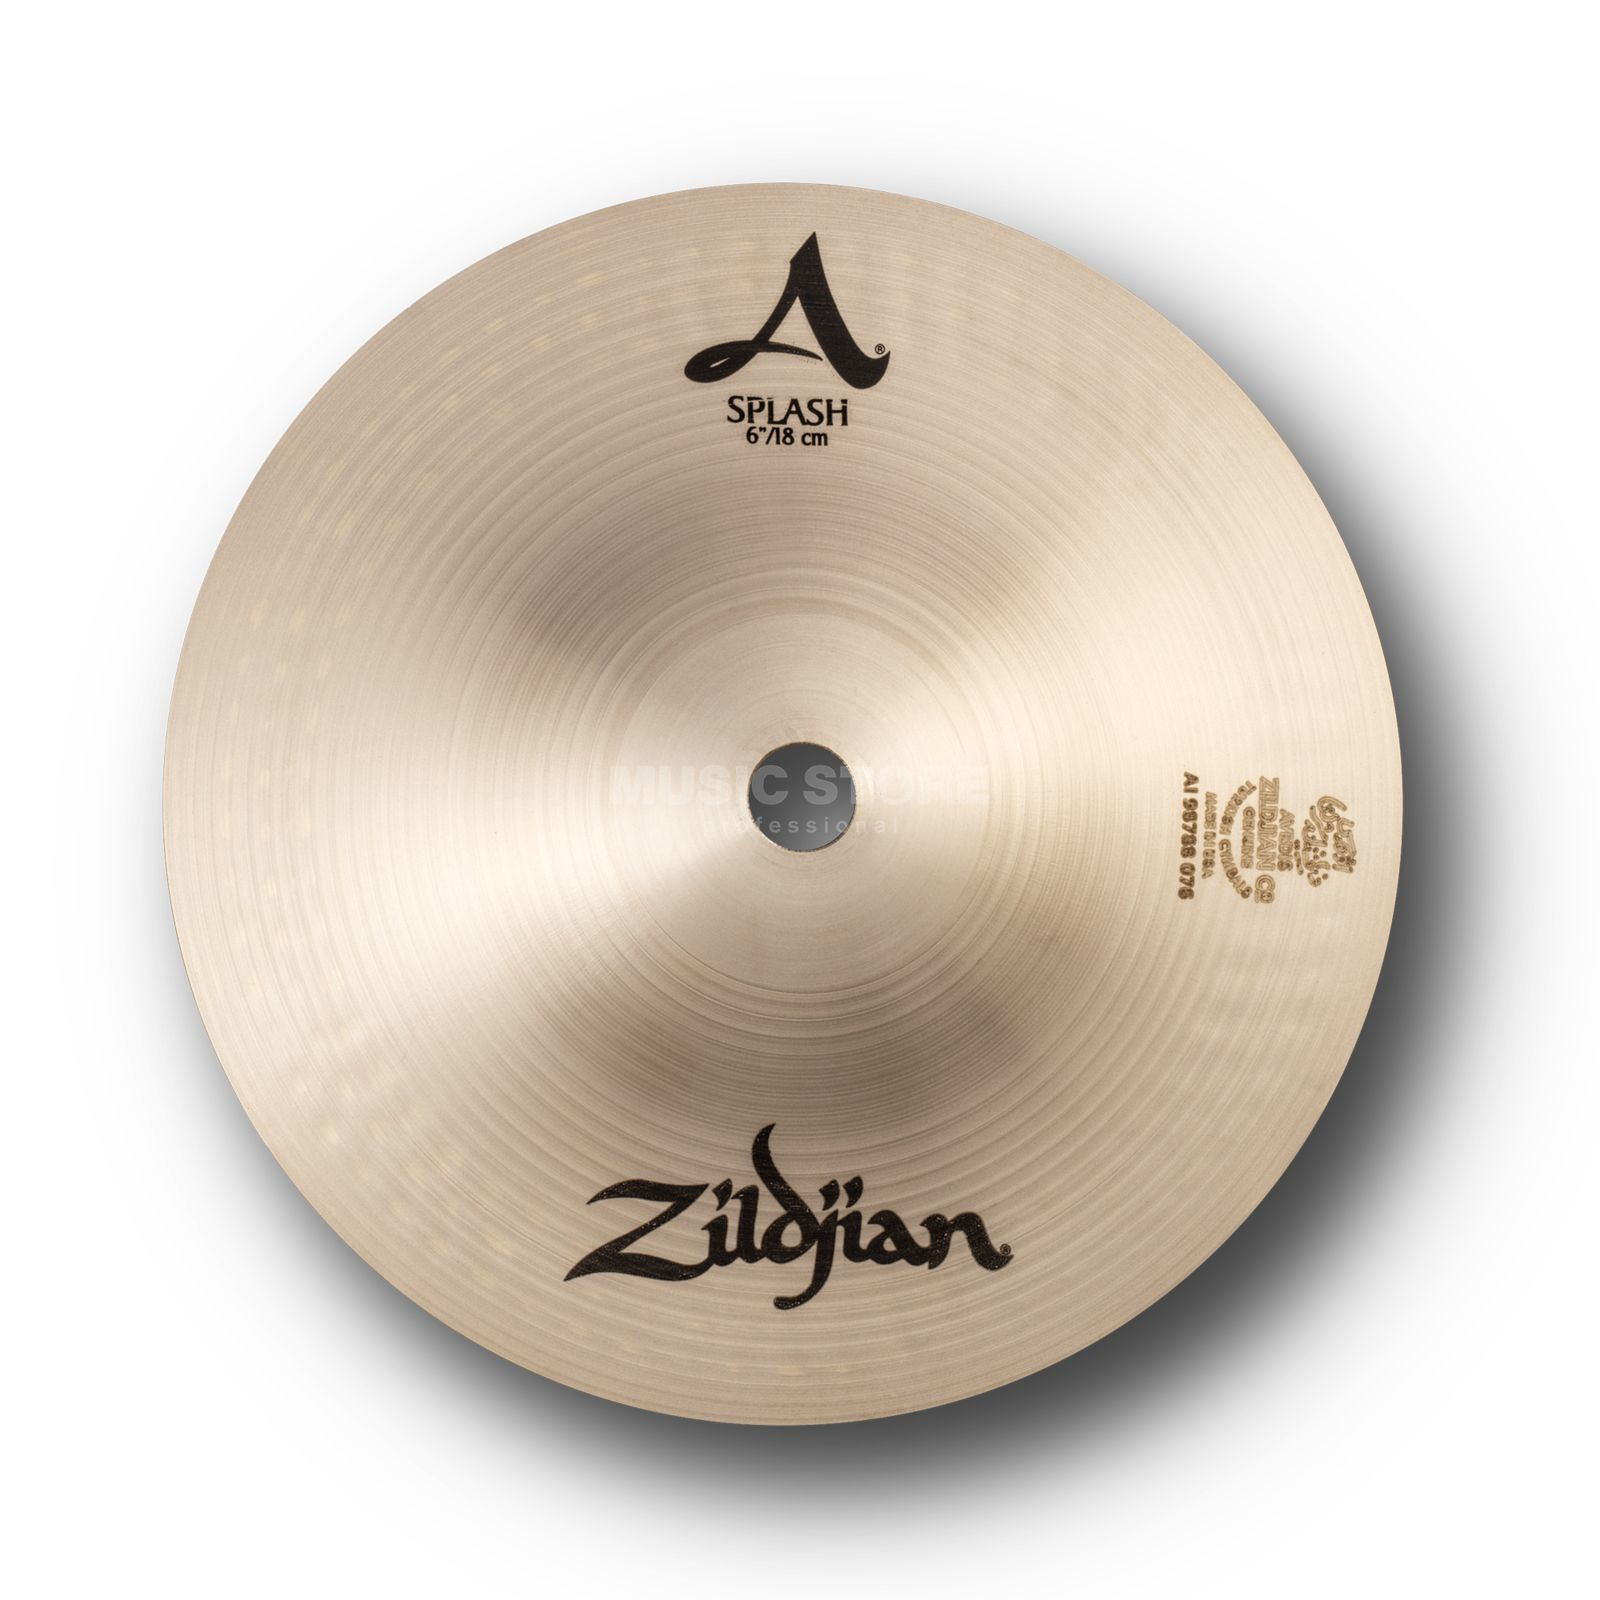 "Zildjian A' Zildjian Splash 6"", Traditional Finish Produktbillede"